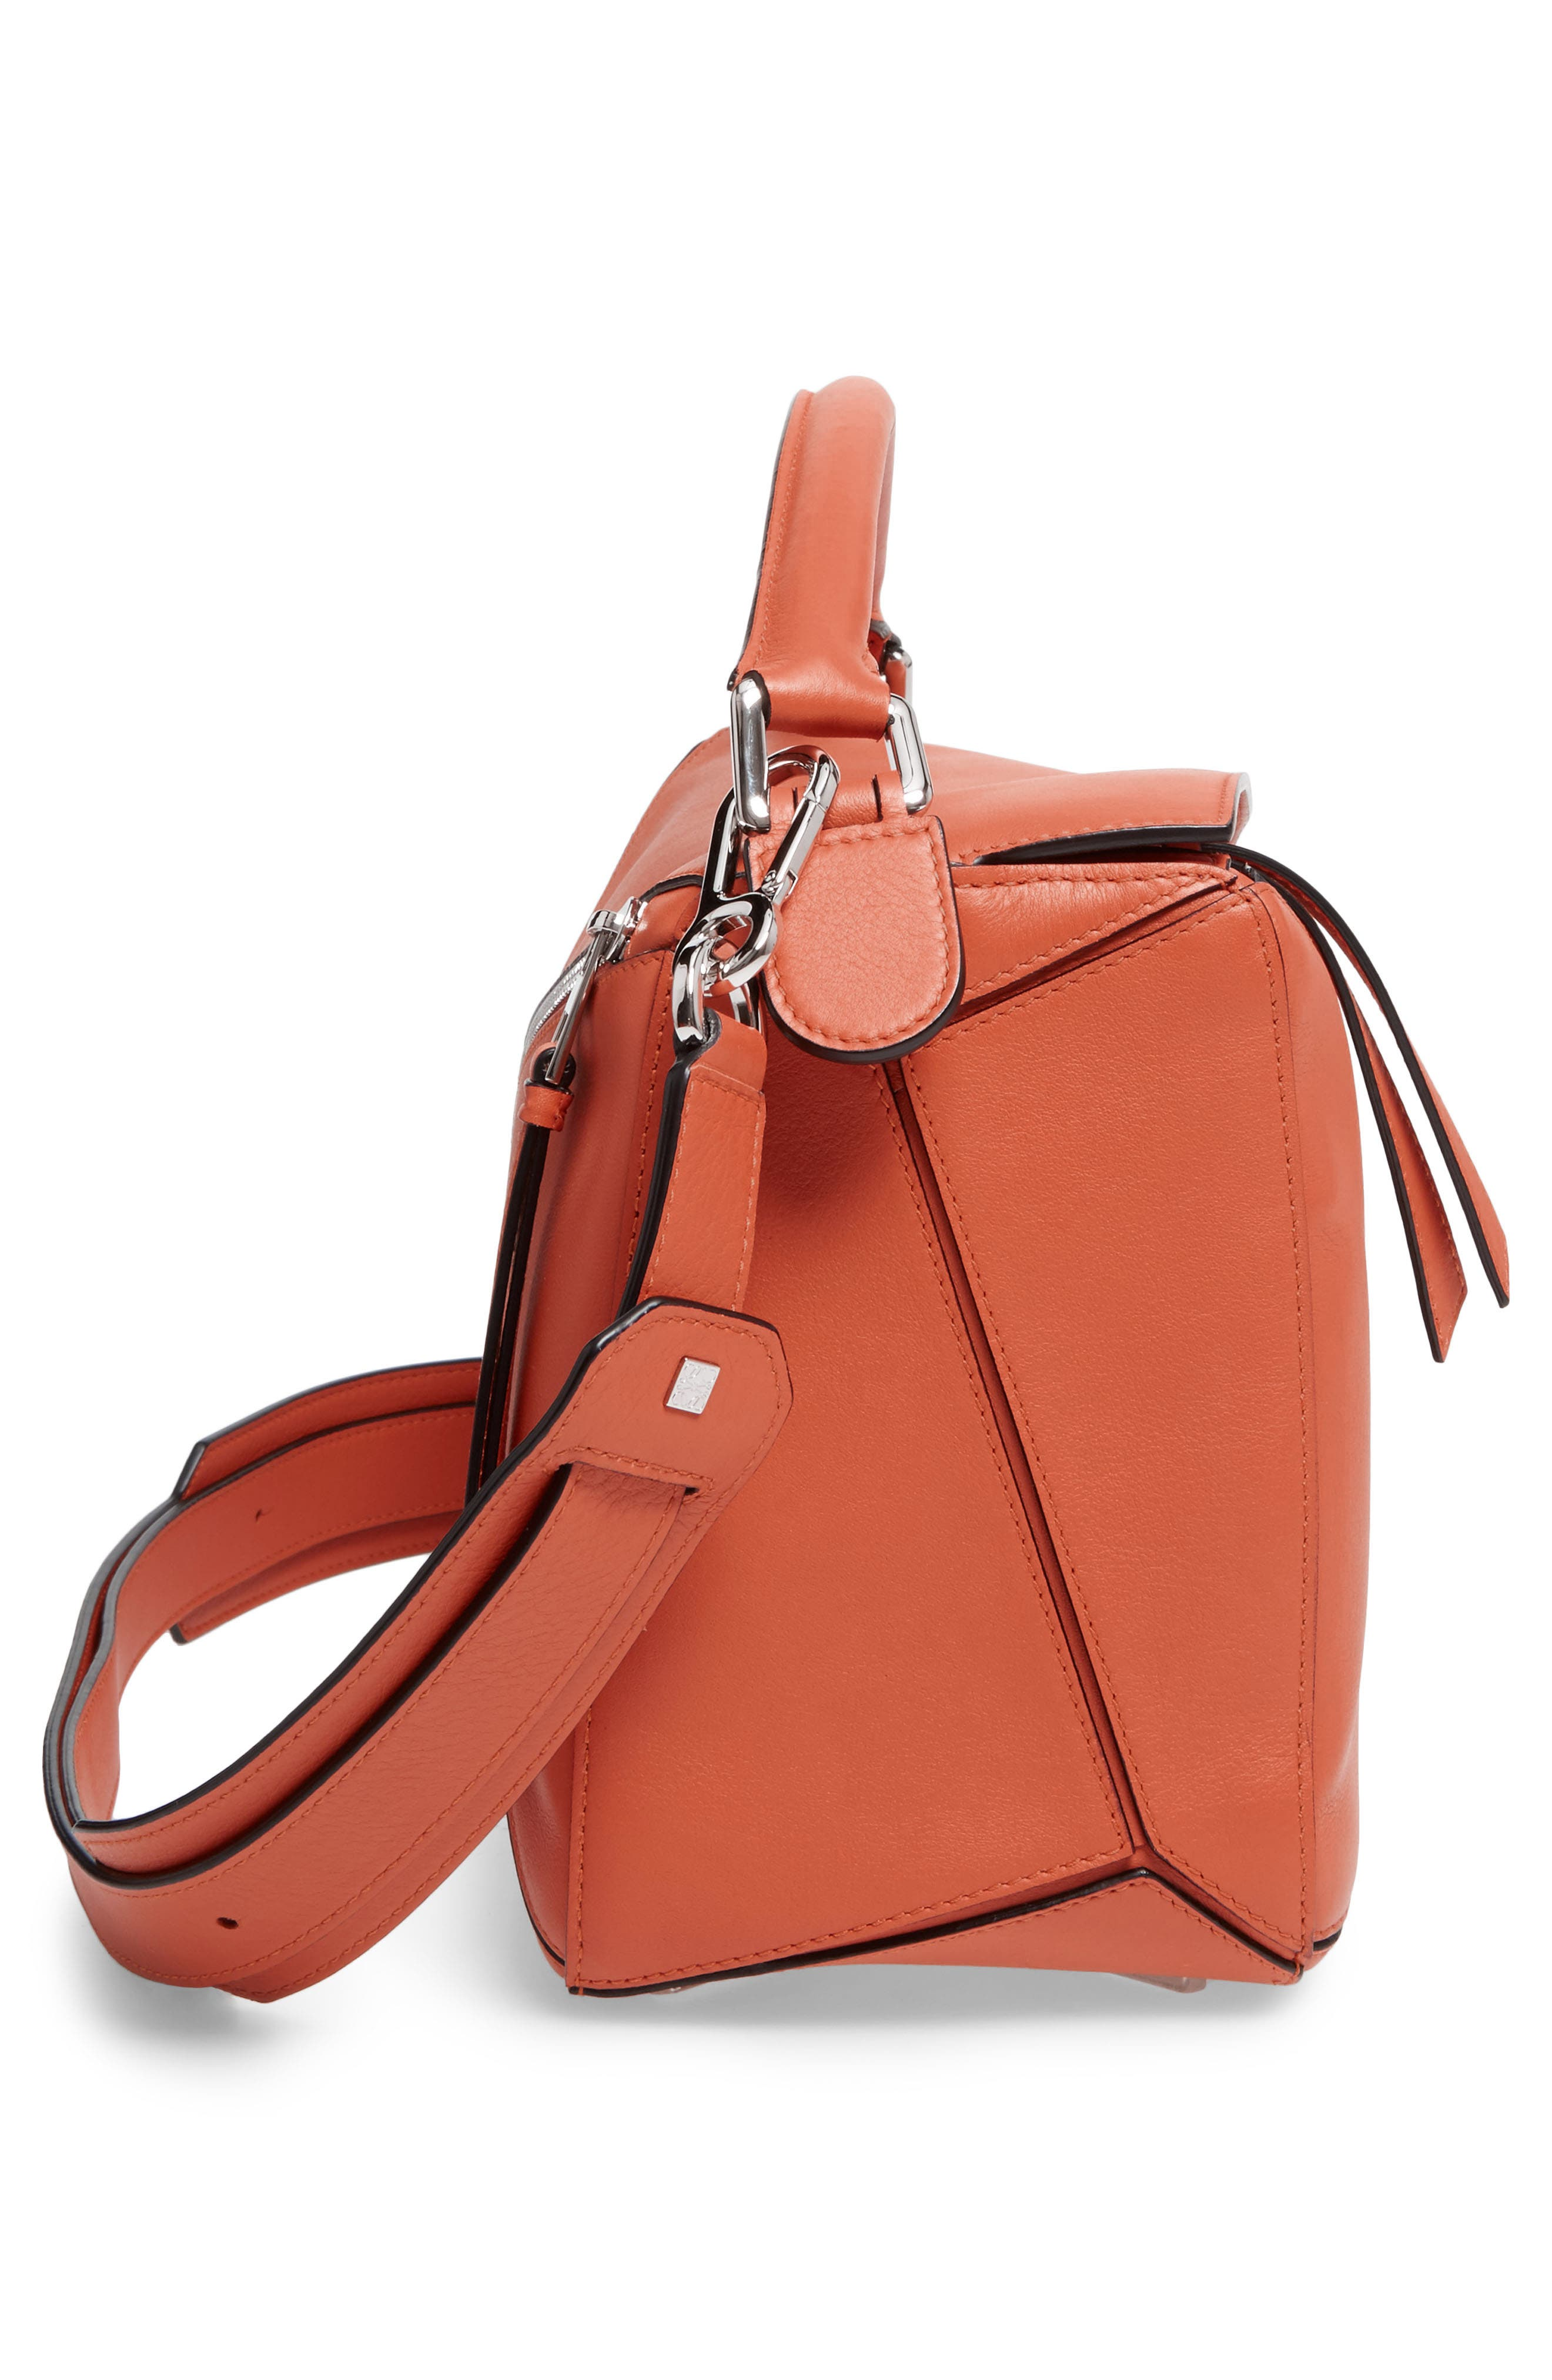 'Small Puzzle' Calfskin Leather Bag,                             Alternate thumbnail 39, color,